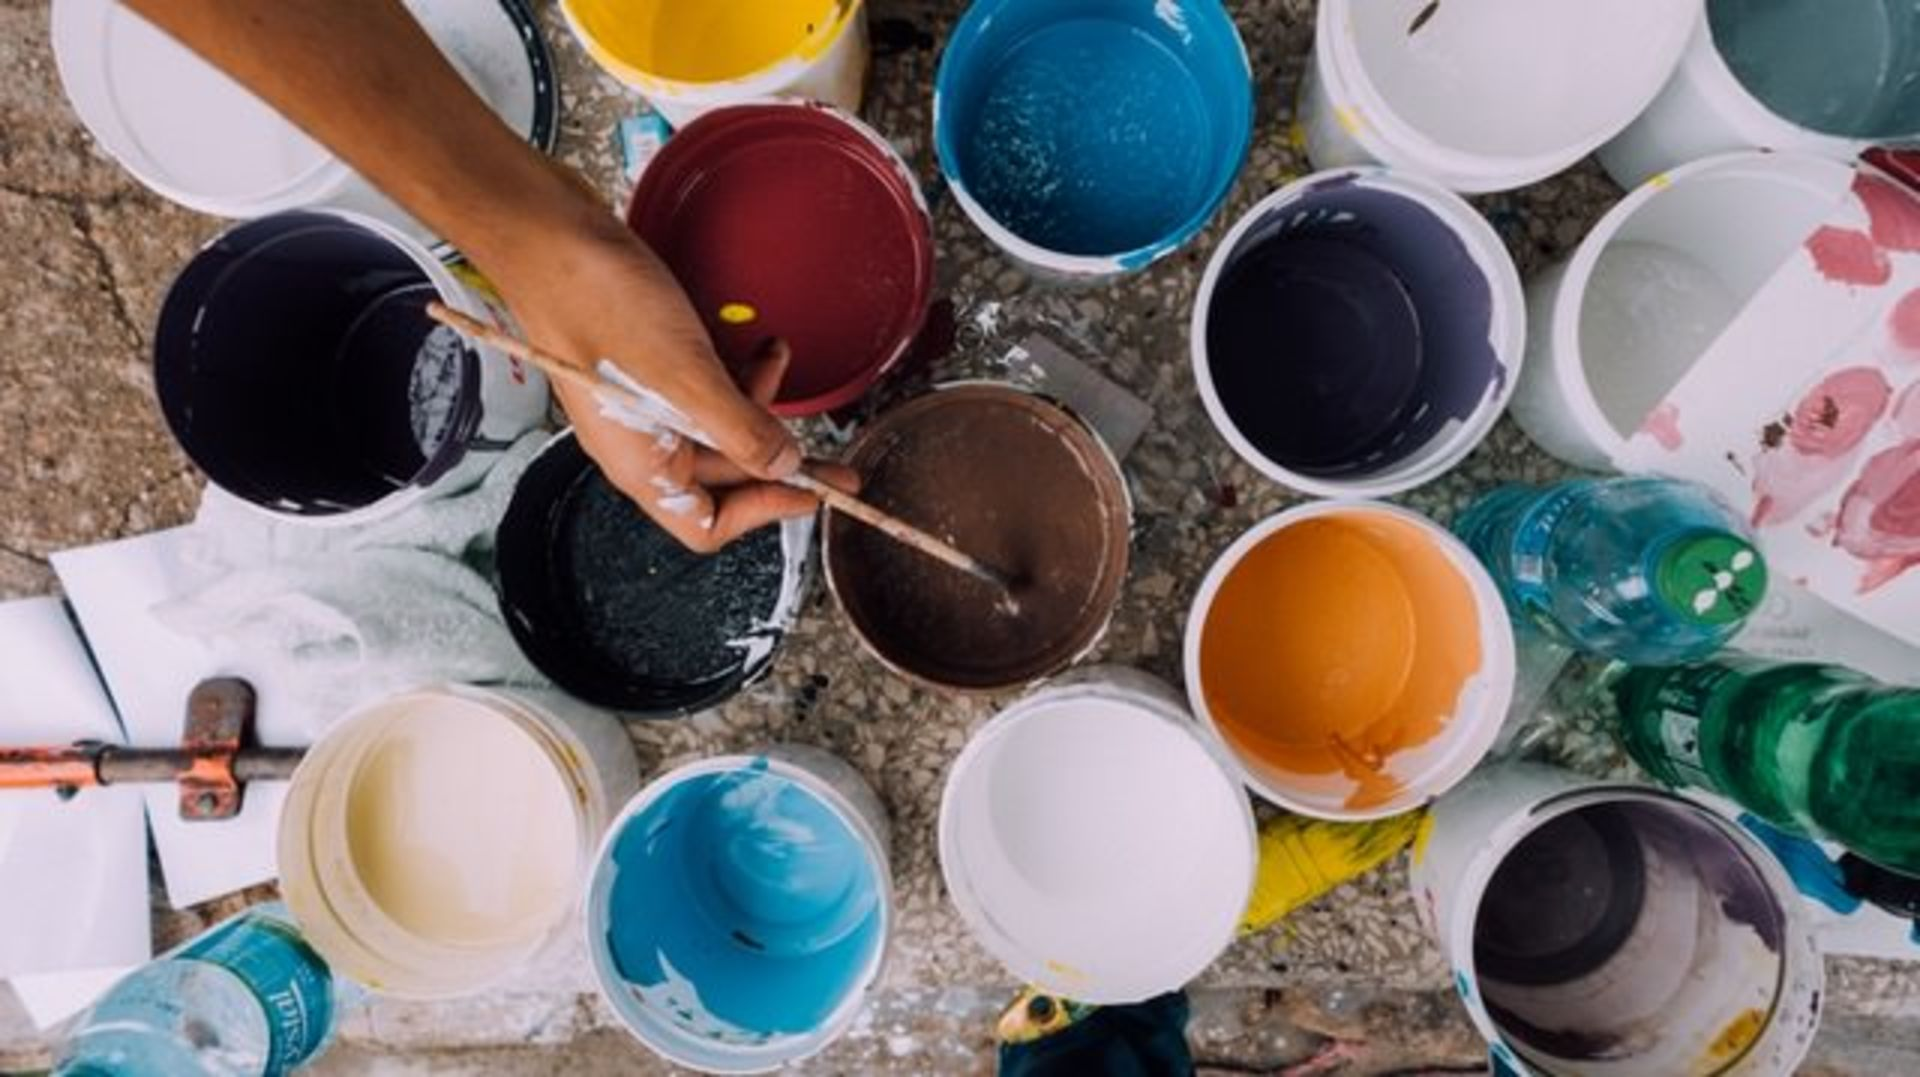 7 Essentials to Consider When Choosing a Paint Color